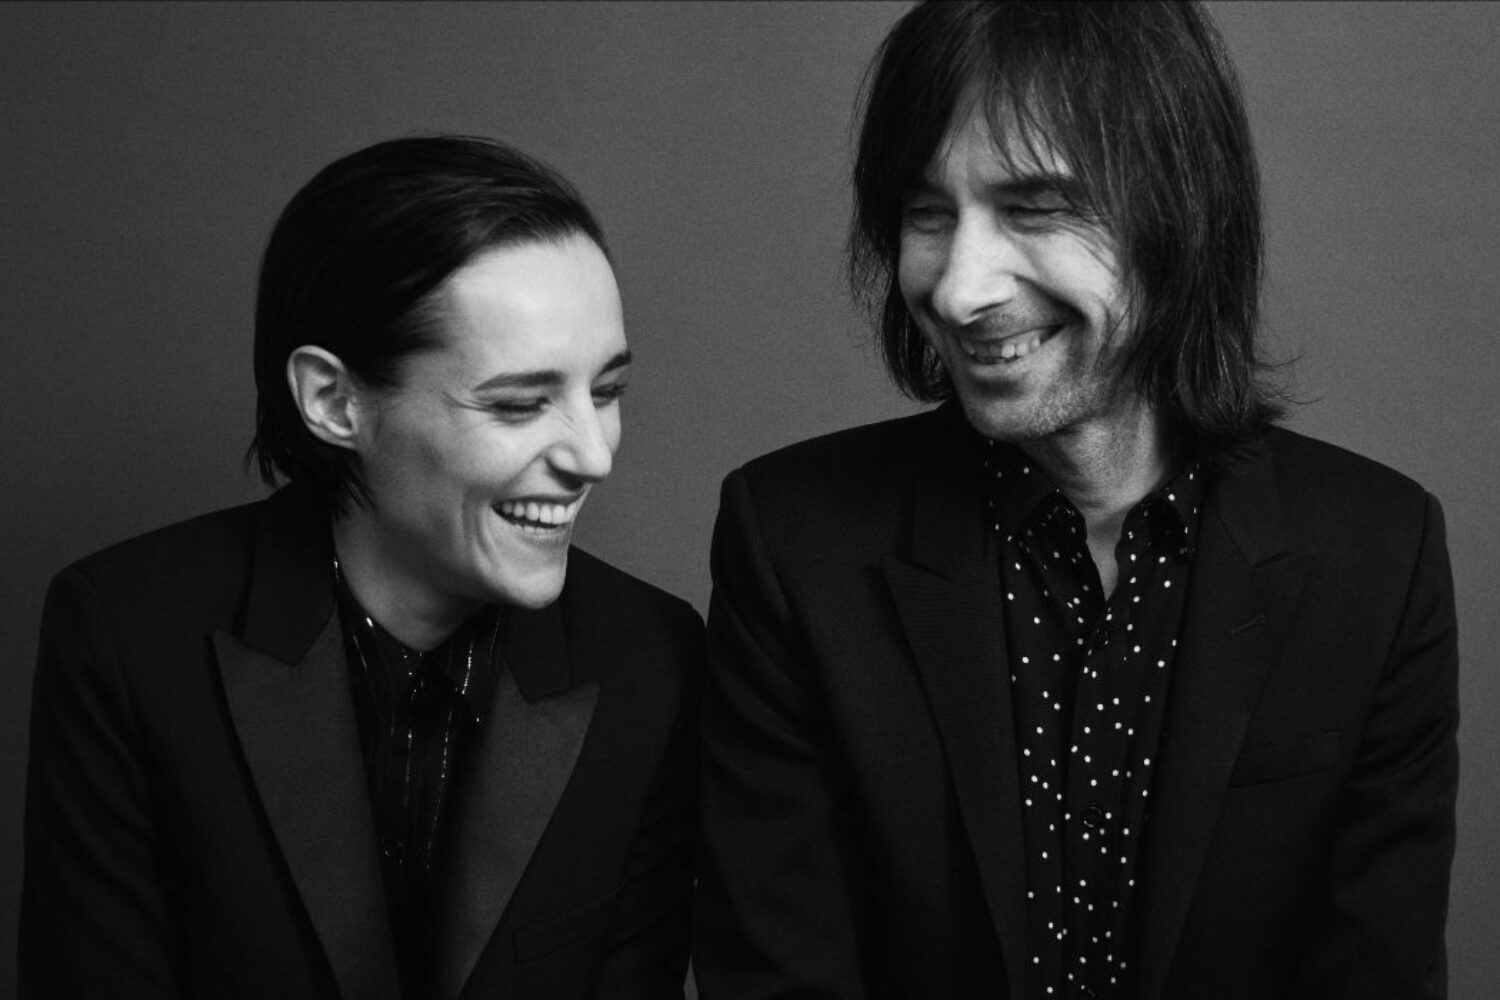 Bobby Gillespie and Jehnny Beth have teamed up for new album 'Utopian Ashes'